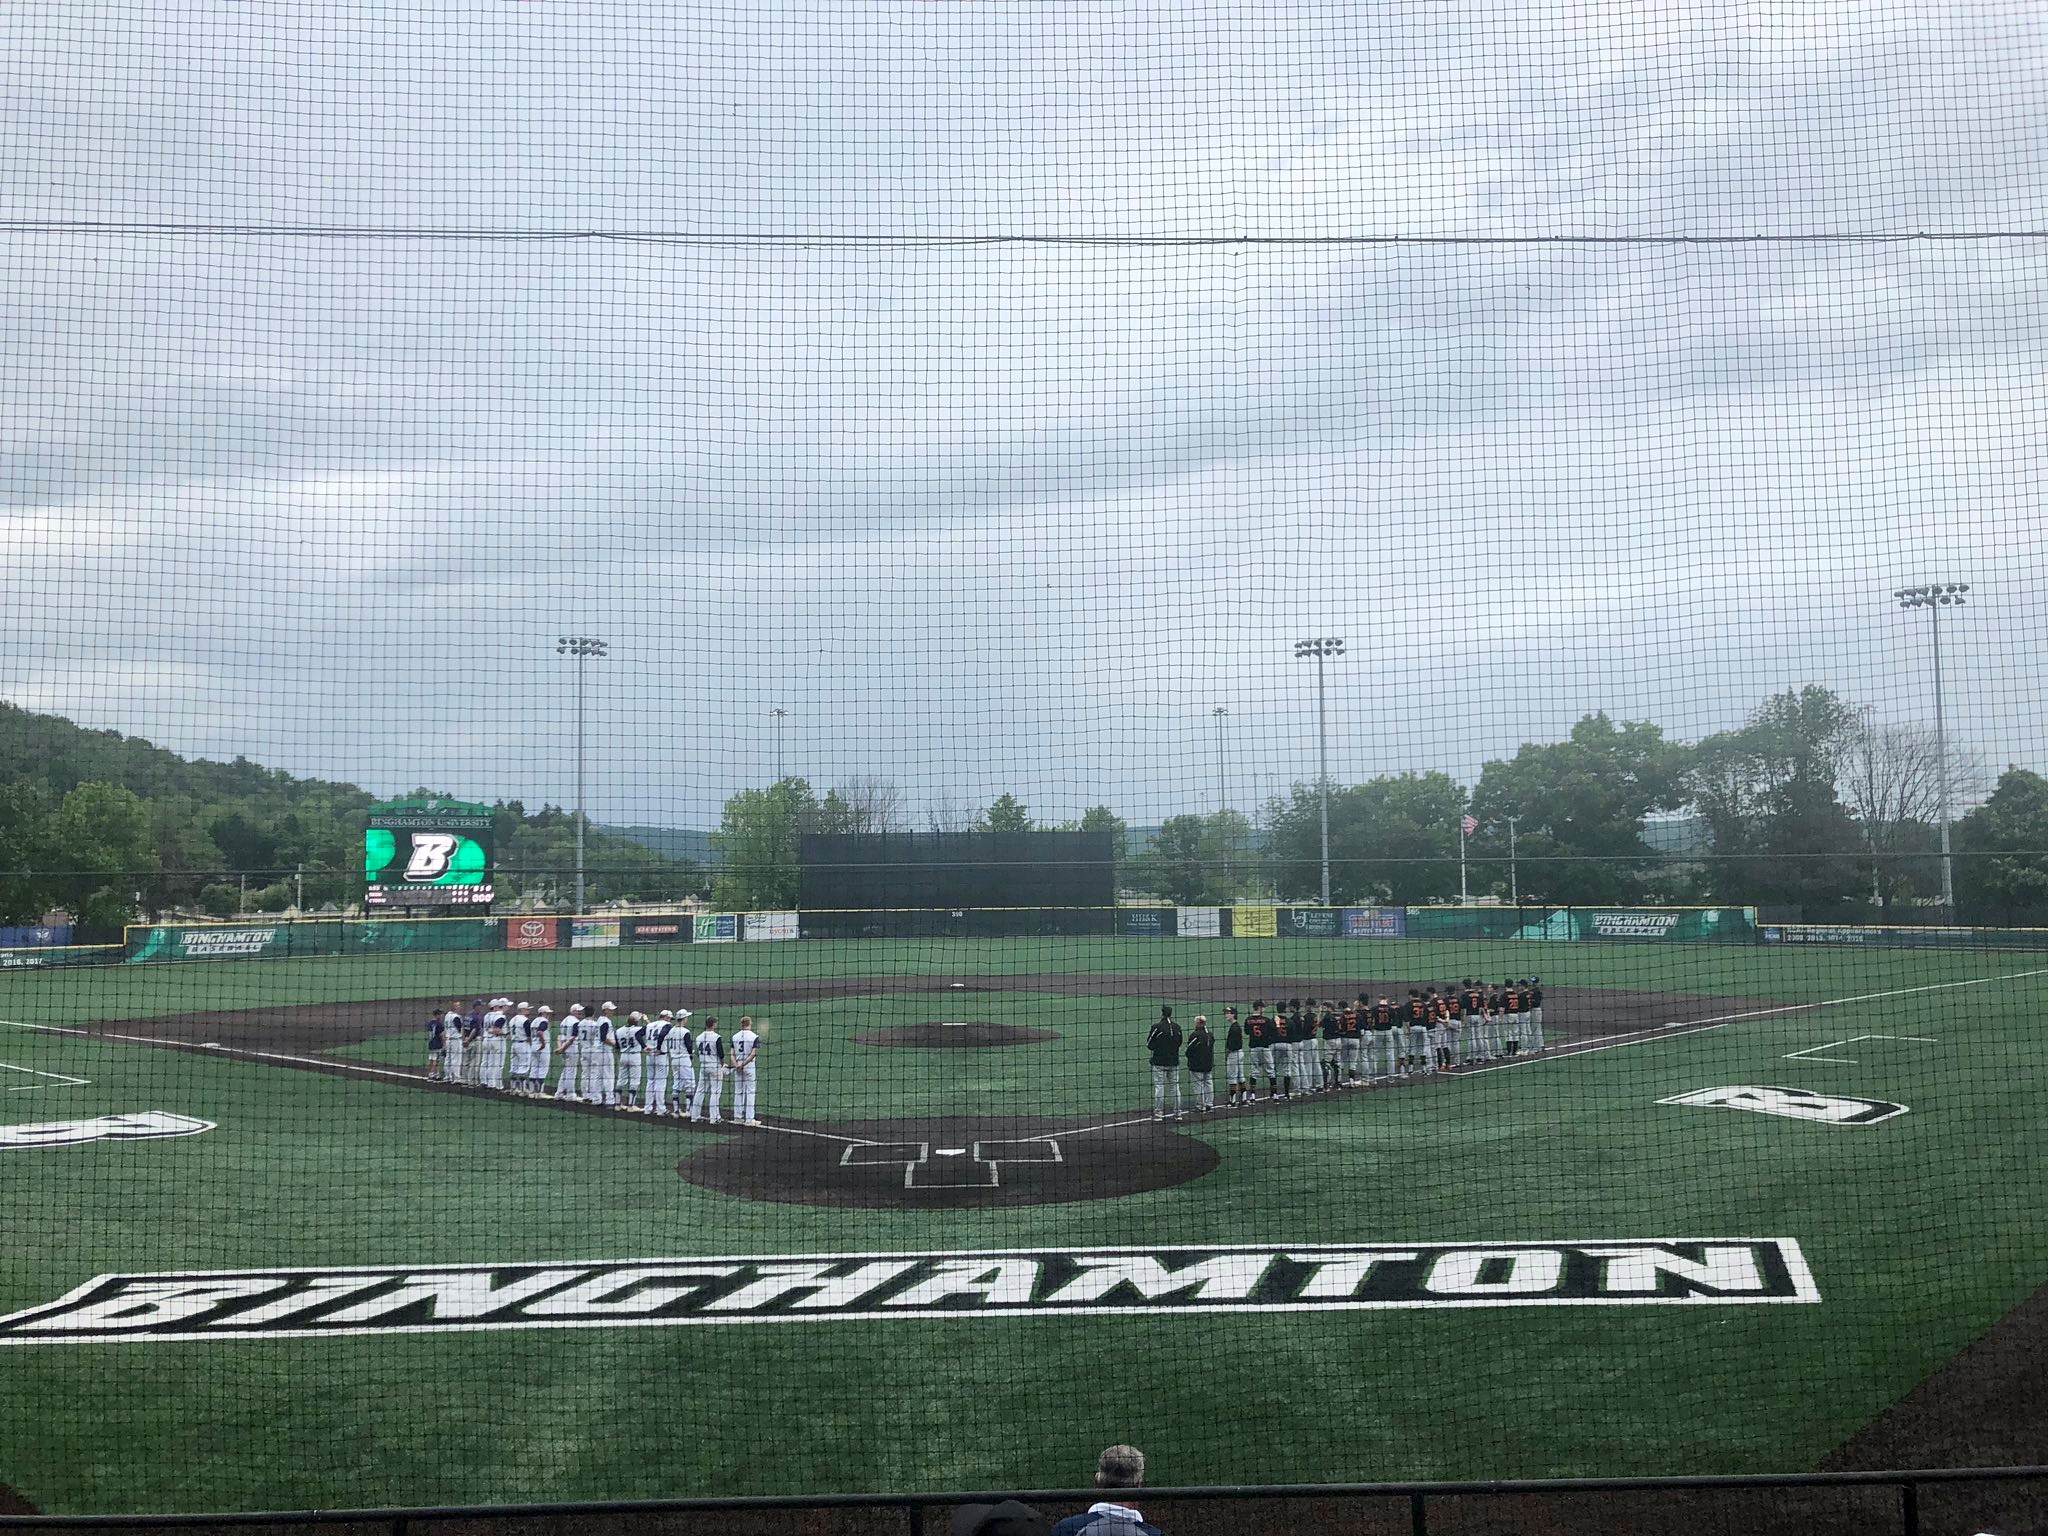 Cooperstown baseball falls to Ticonderoga in Class C state final